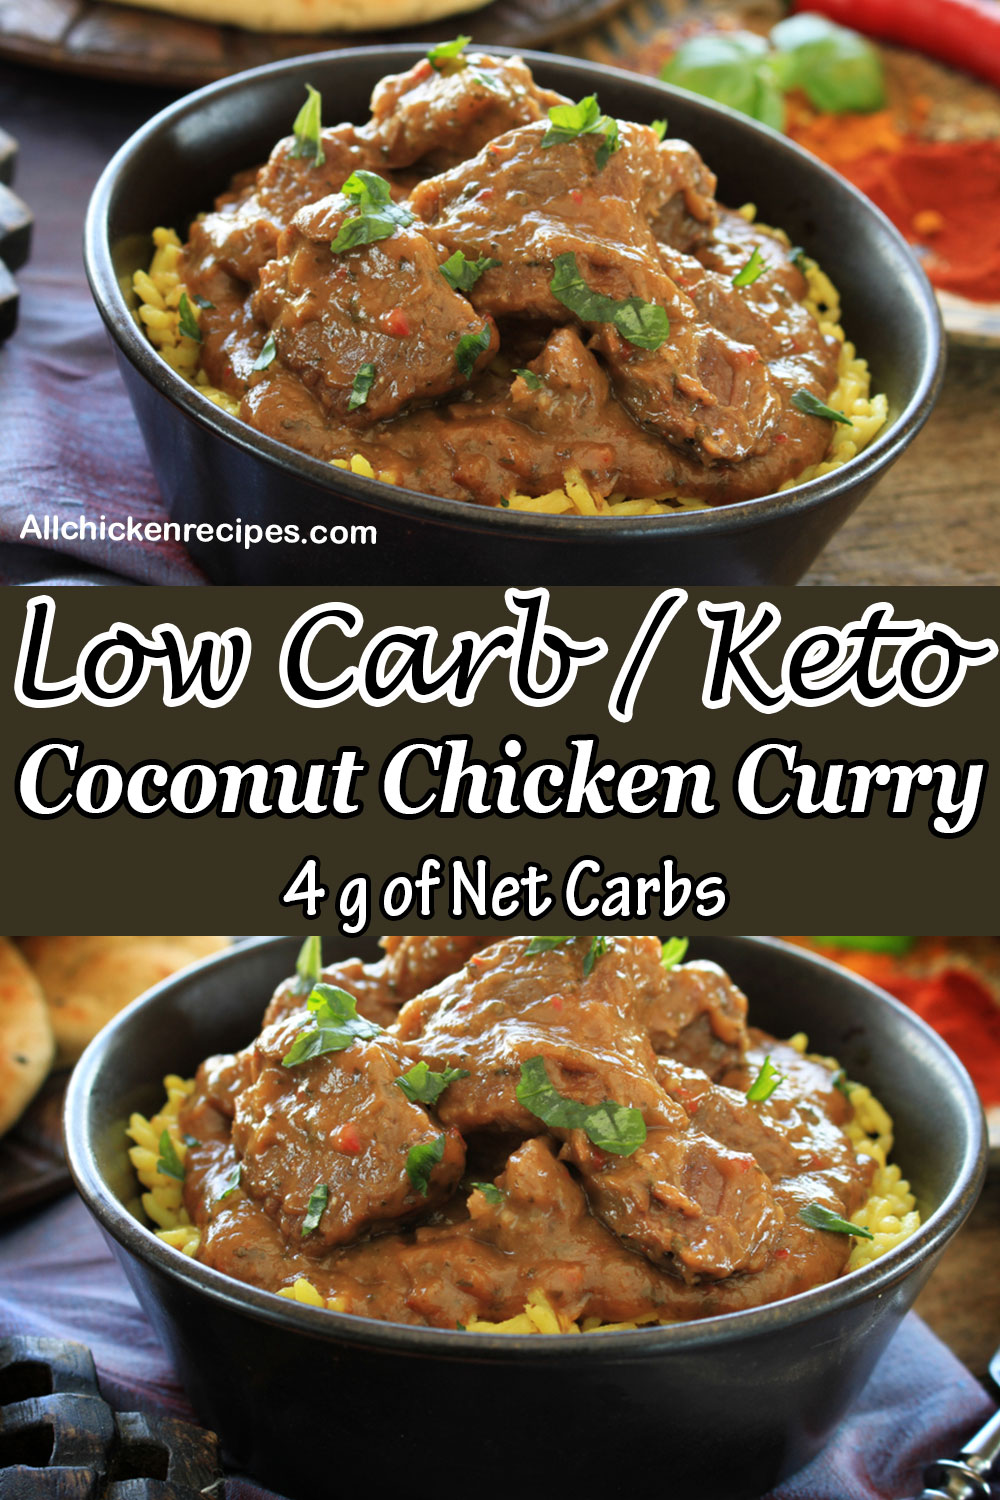 Low carb keto Coconut Chicken